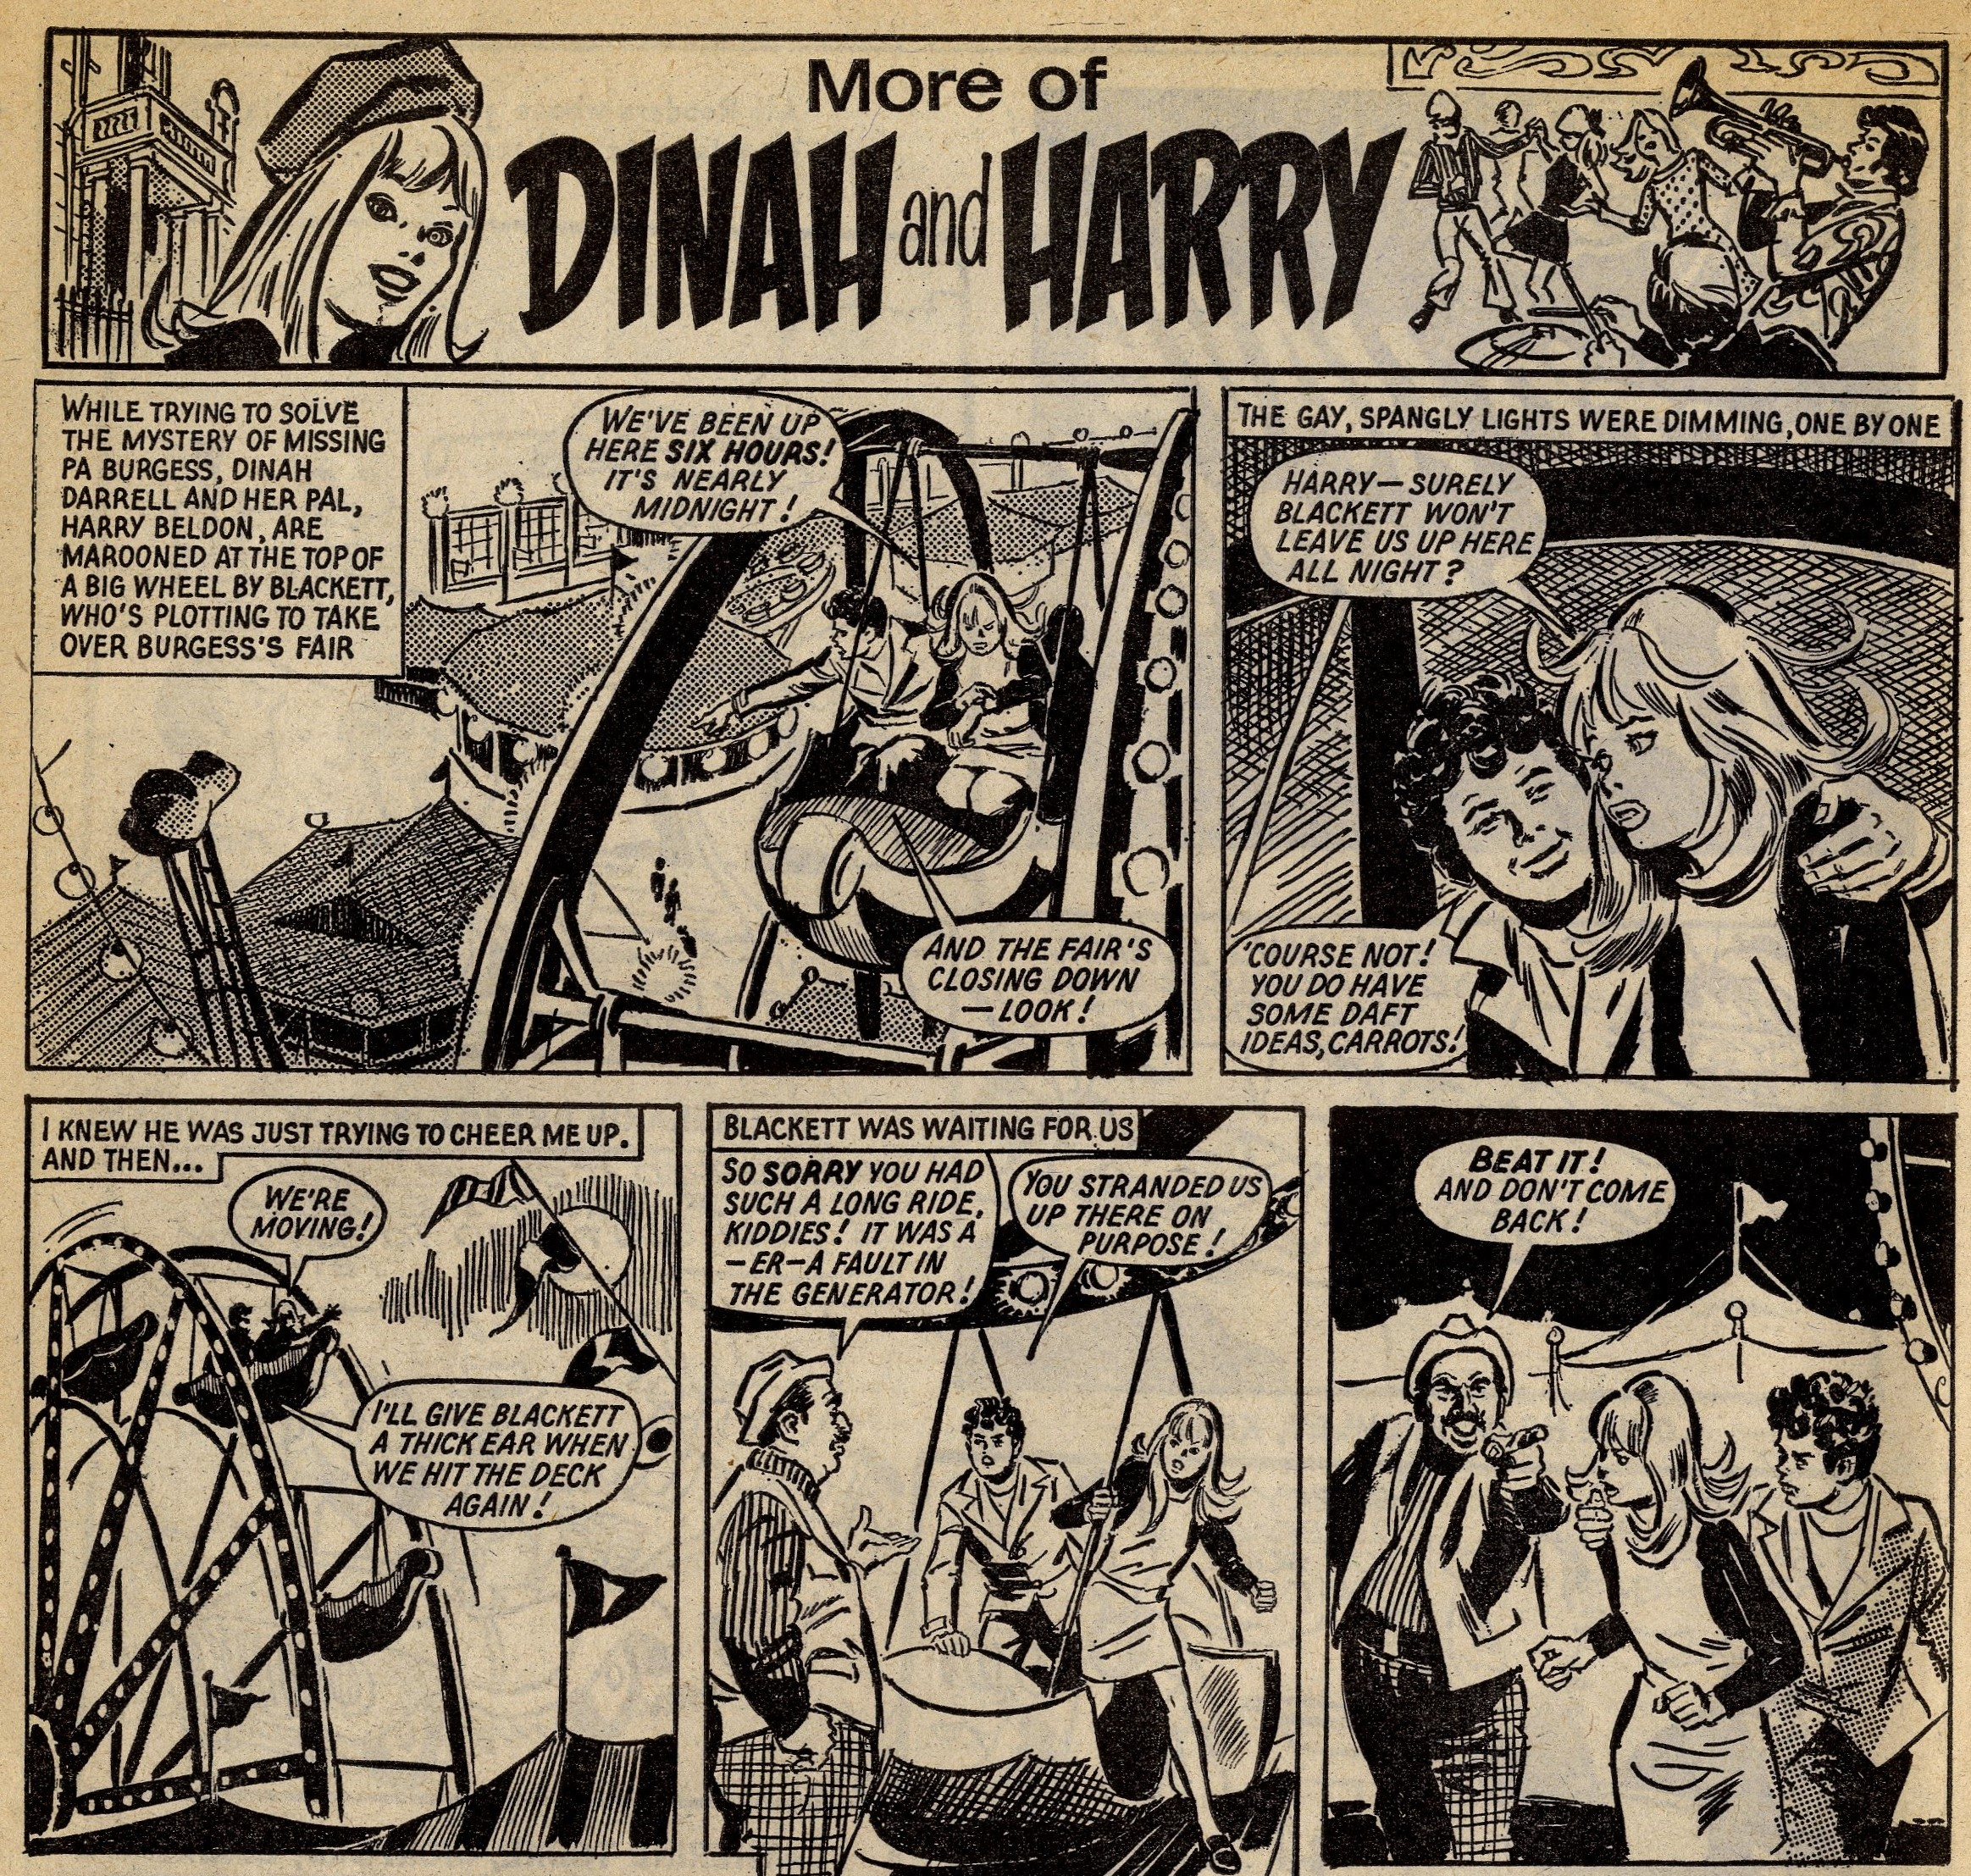 Dinah and Harry: Carlos Freixas (artist)